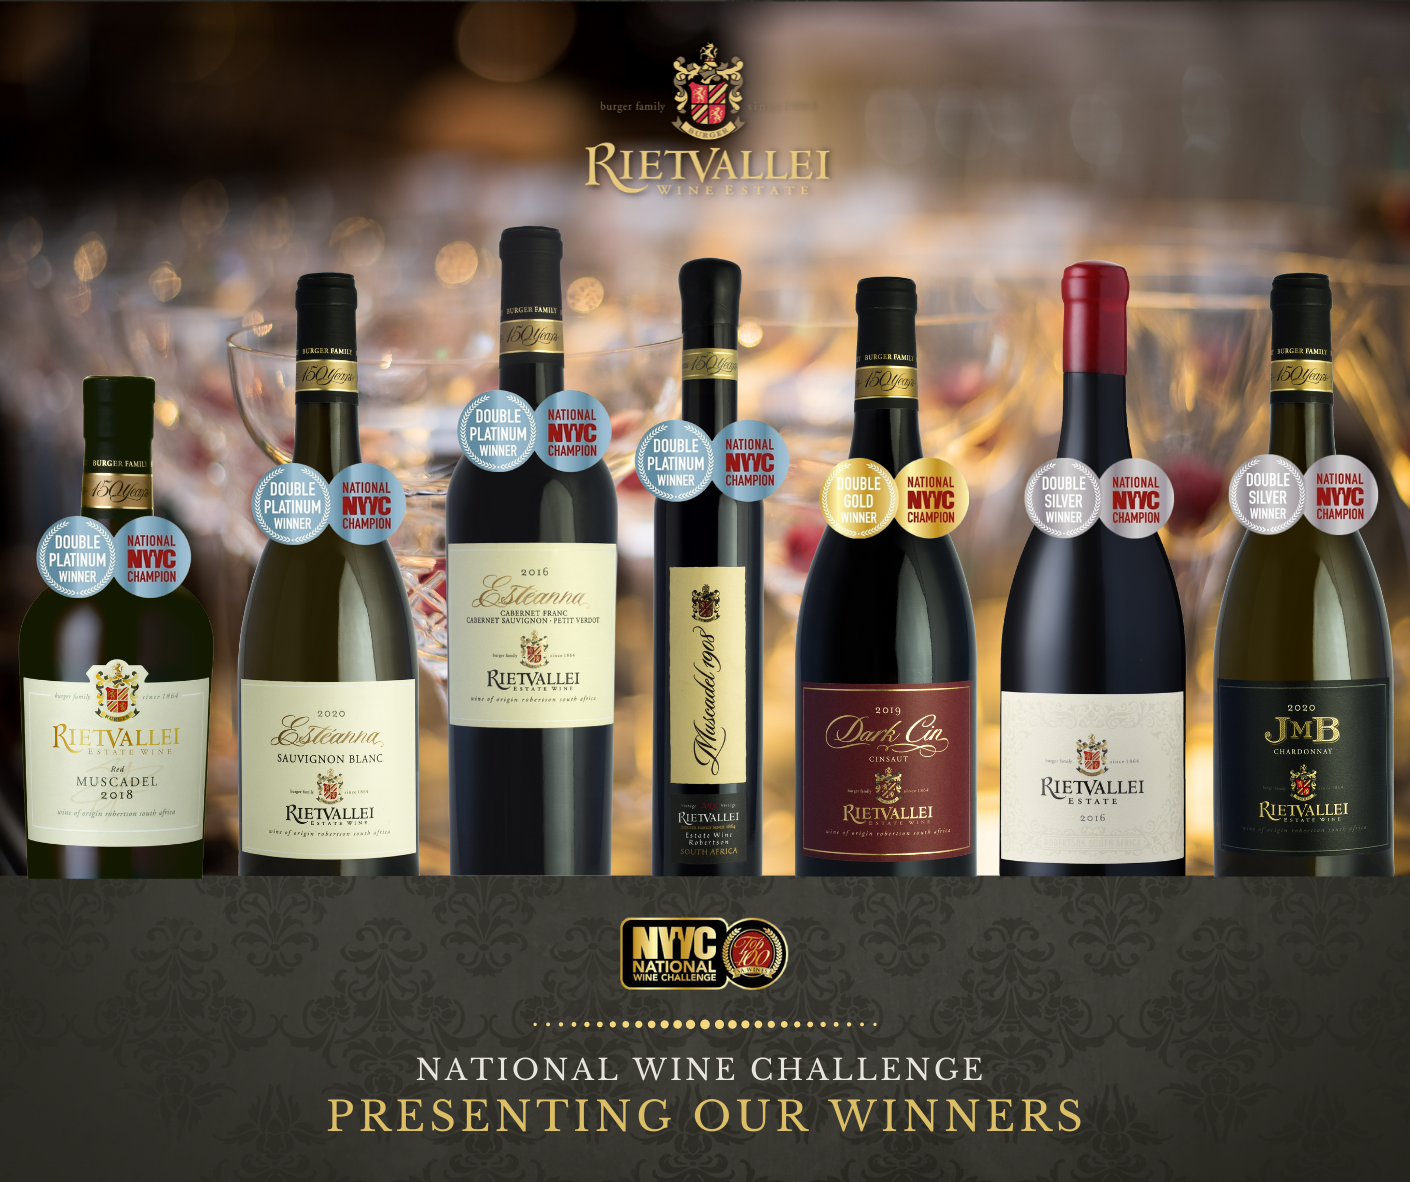 National Wine Challenge Award Results for Rietvallei Wine Estate photo